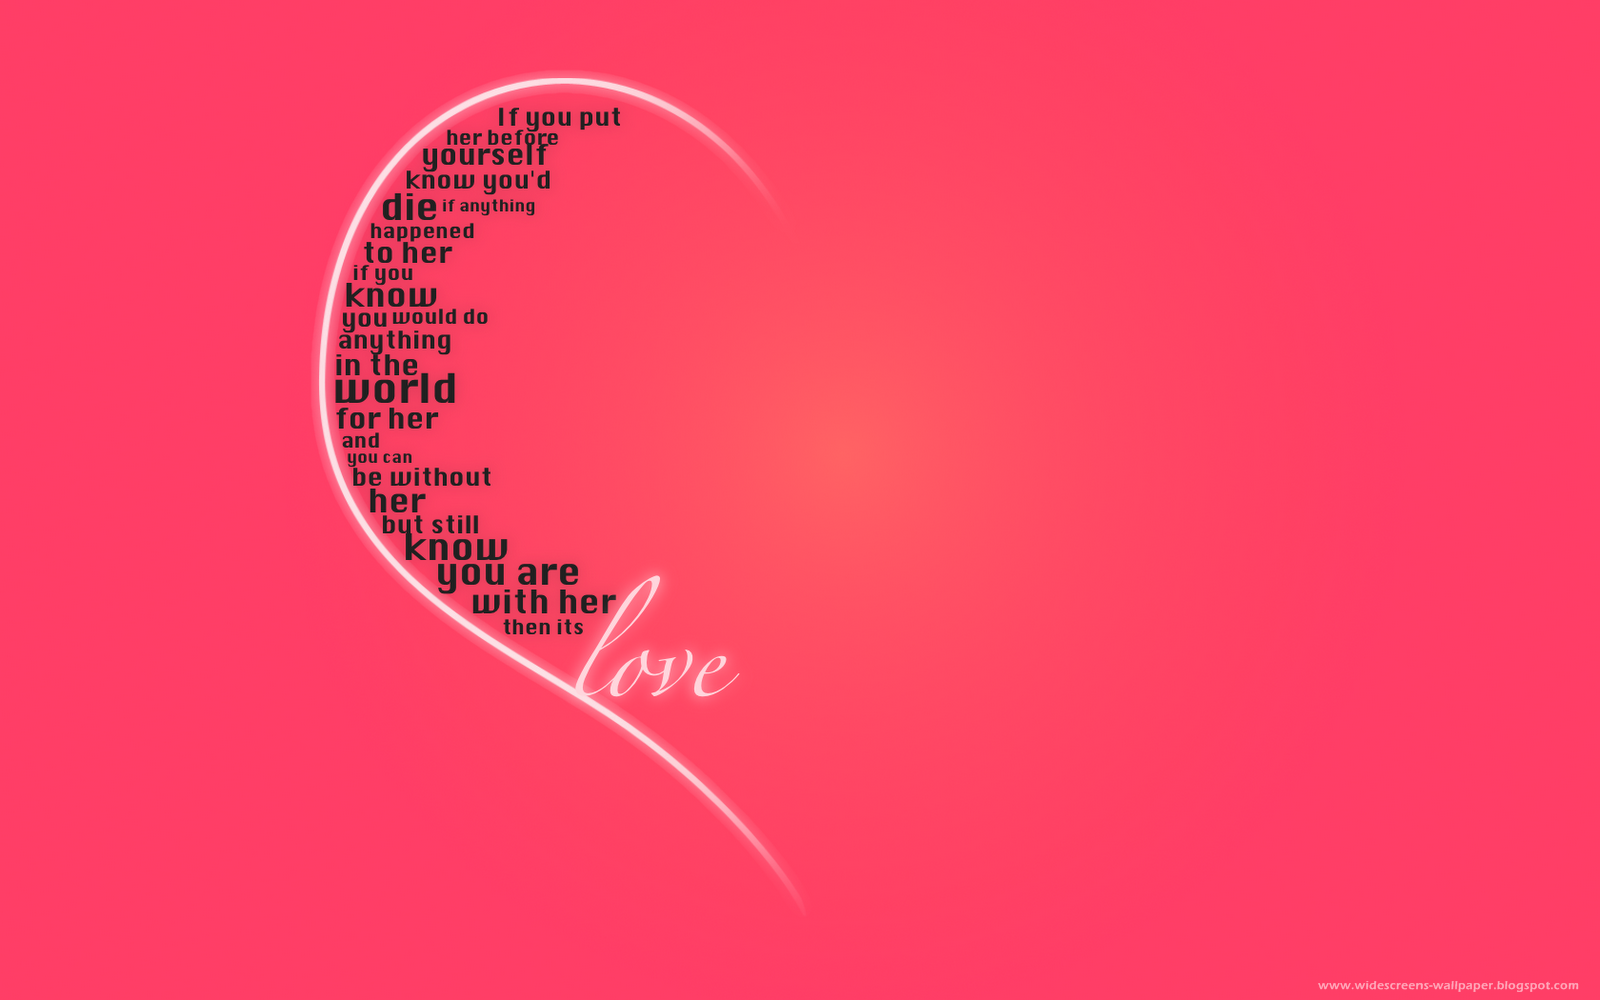 Real Love Quotes Wallpaper : Wallpaper collection For Your computer and Mobile Phones ...